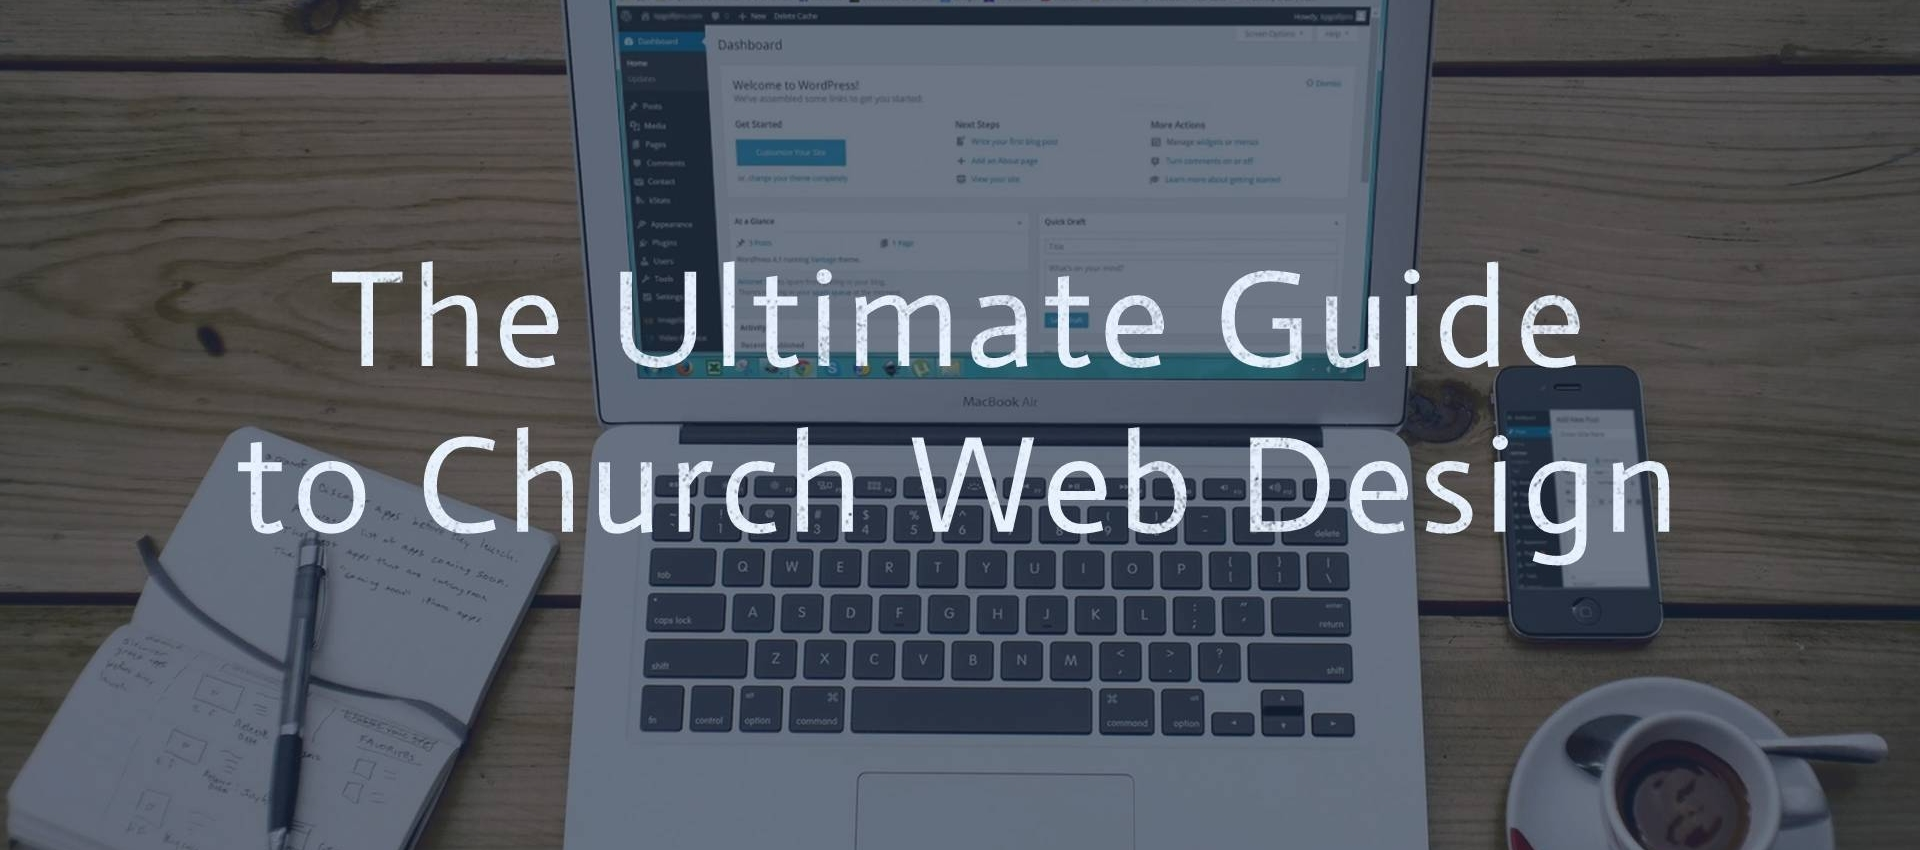 ultimate guide to church web design